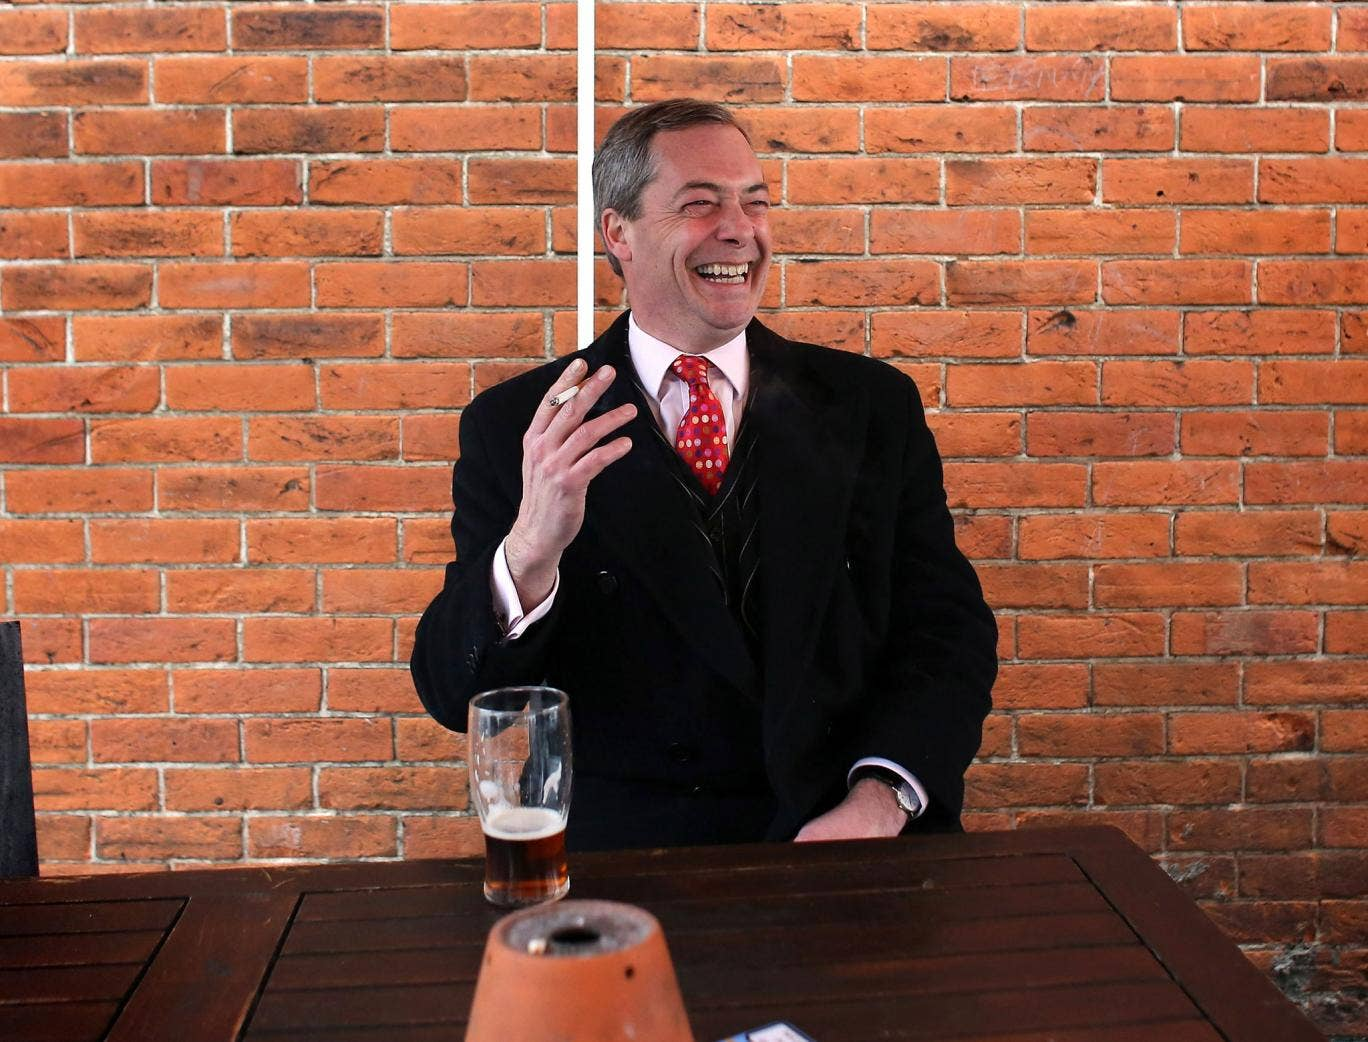 Nigel Farage smokes a cigarette and drinks a pint of beer as he takes a break in a pub during the by-election campaign for Eastleigh, Hampshire